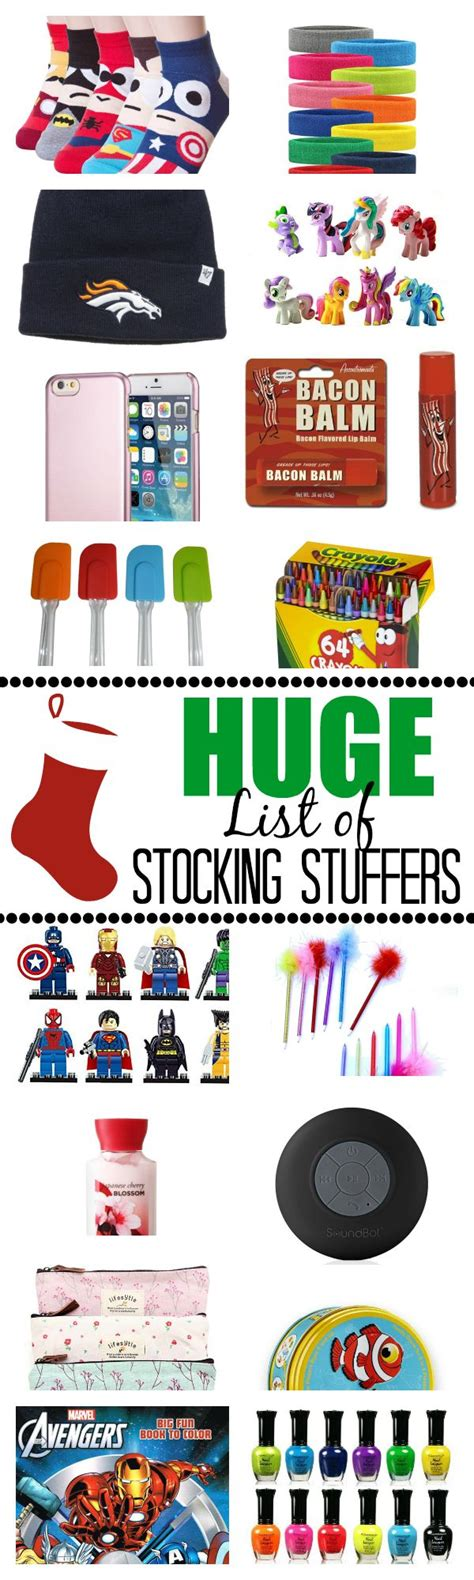 top 30 unique frugal stocking stuffer ideas hip2save 17 best images about gift ideas on pinterest box of